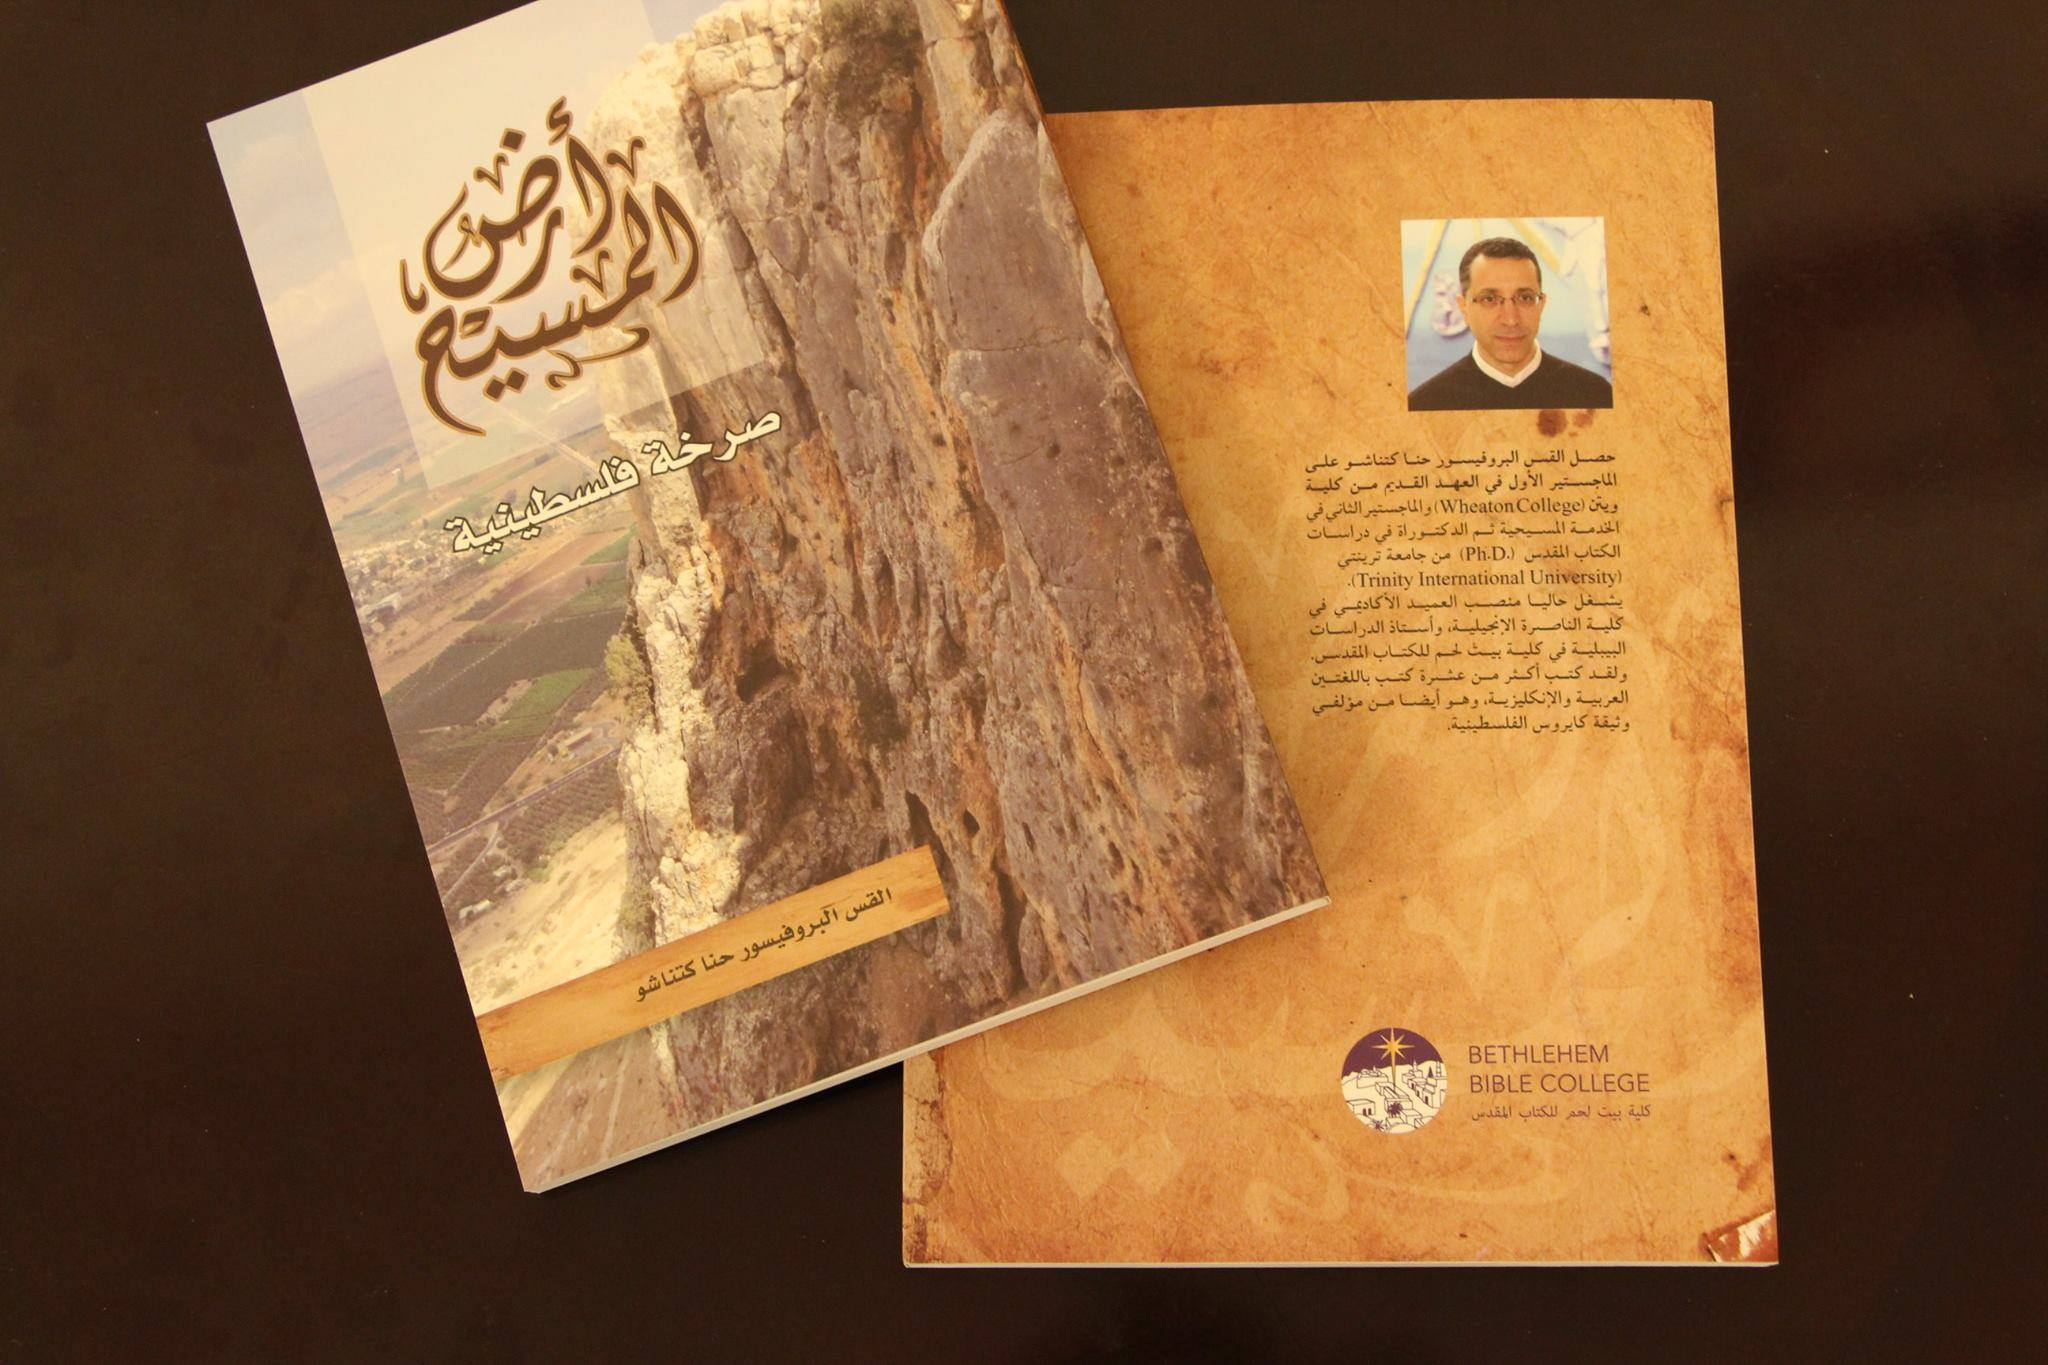 """Bethlehem Bible College Launches  """"The Land of Christ-A Palestinian Cry""""  By Rev. Prof. Hanna Katanacho"""